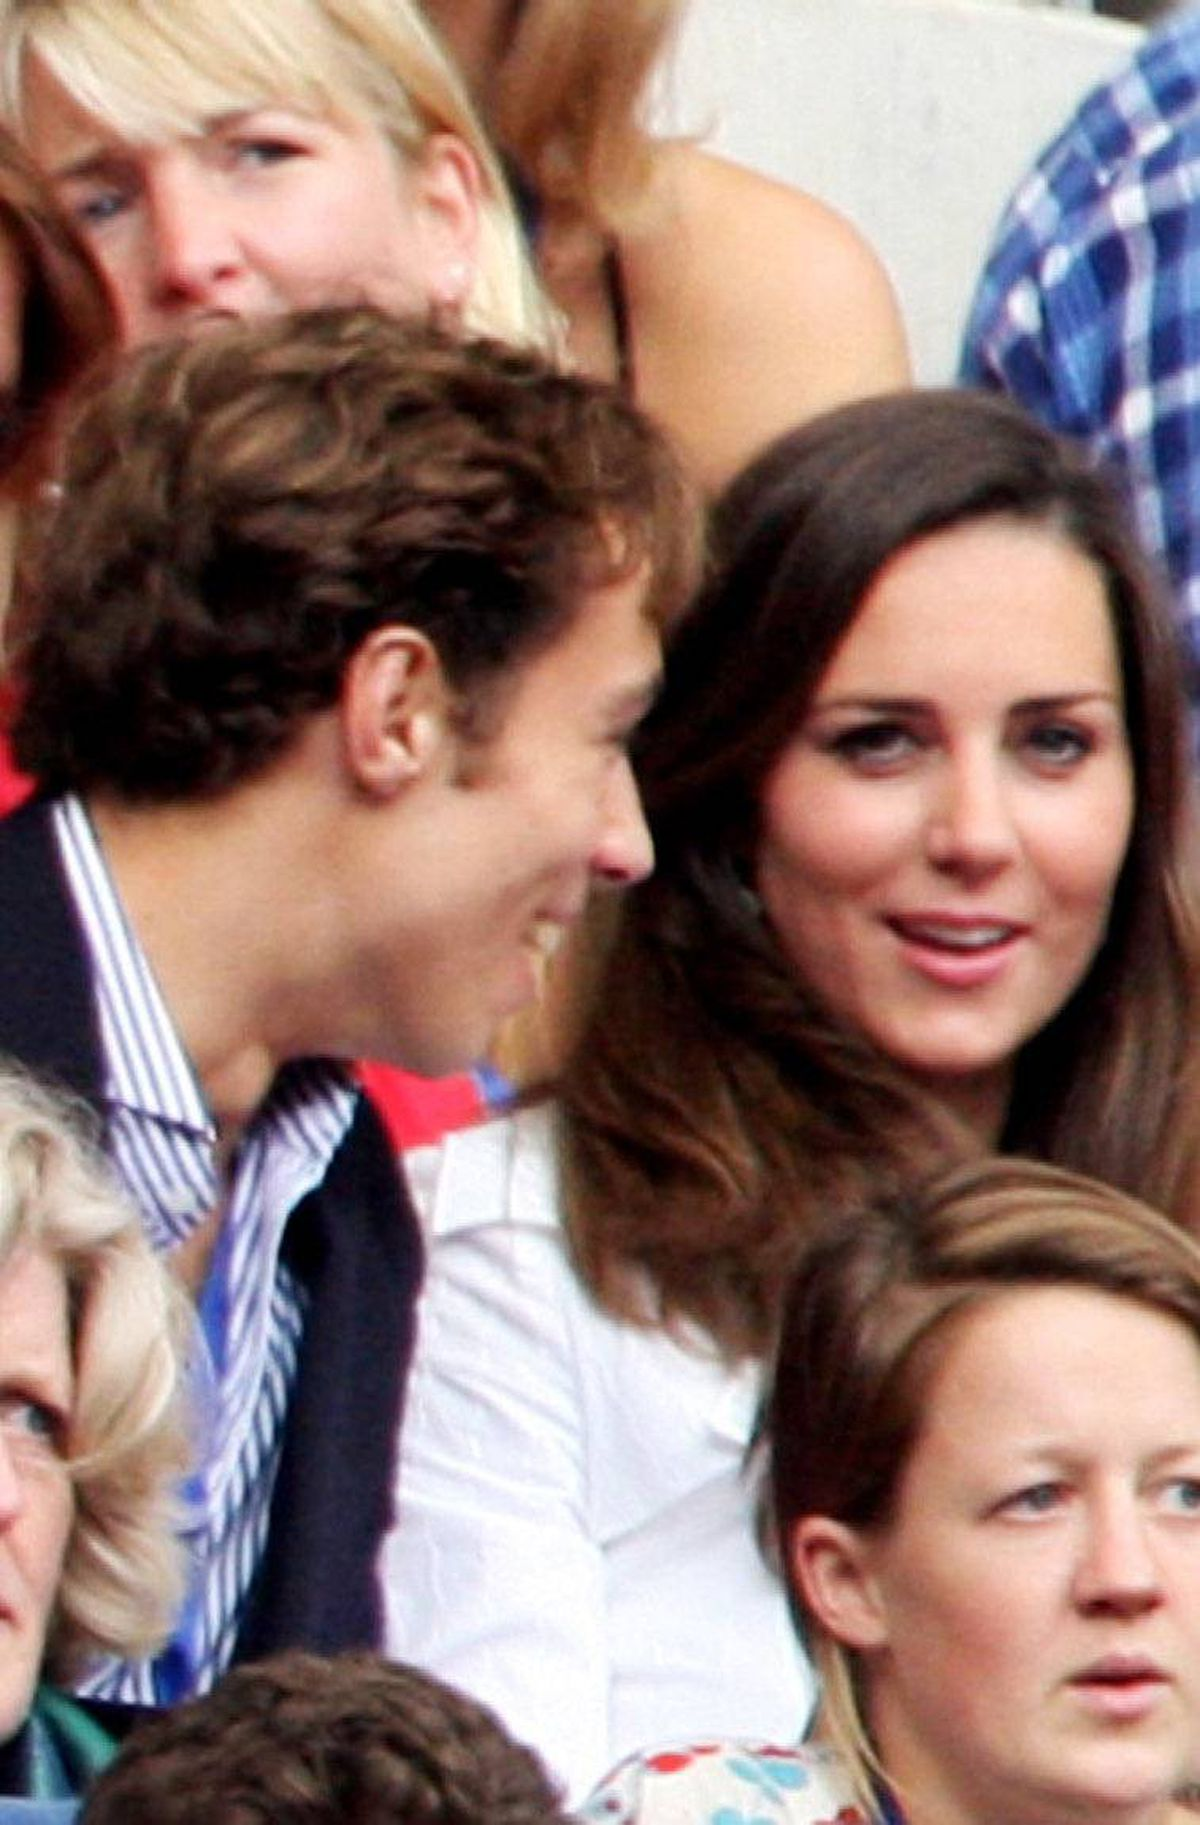 Kate Middleton (R) and a friend watch the Concert for Diana at Wembley Stadium on July 1, 2007 in London, England. The Concert fell on the date that would have been the late Princess's 46th birthday and marks 10 years since her death with an event headed by Princes William and Harry to celebrate her life.